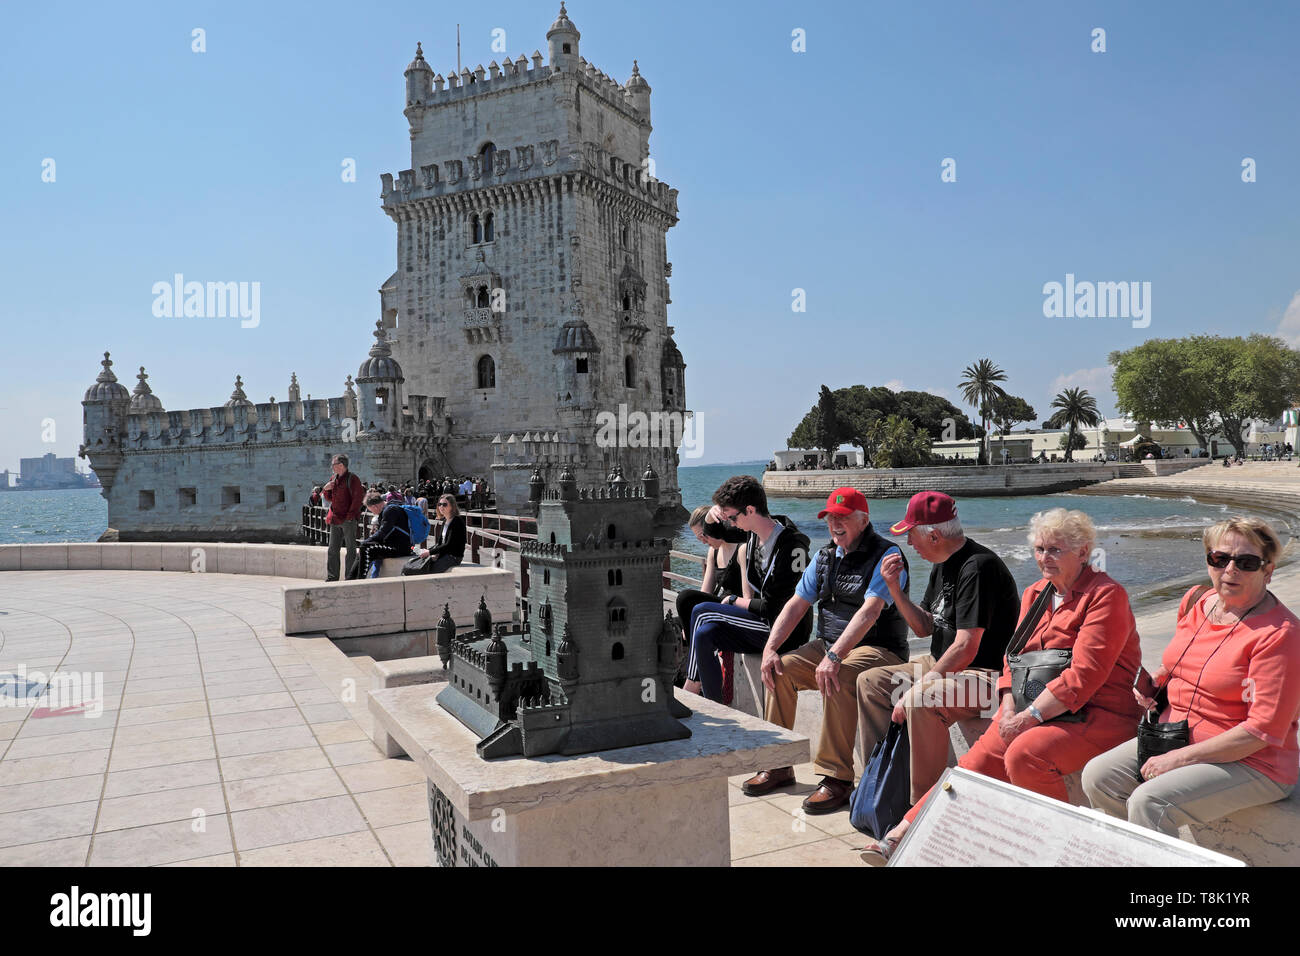 Seniors tourists people couples visiting Belem Tower sitting outside by a miniature model replica of building in Belem Lisbon Portugal  KATHY DEWITT - Stock Image